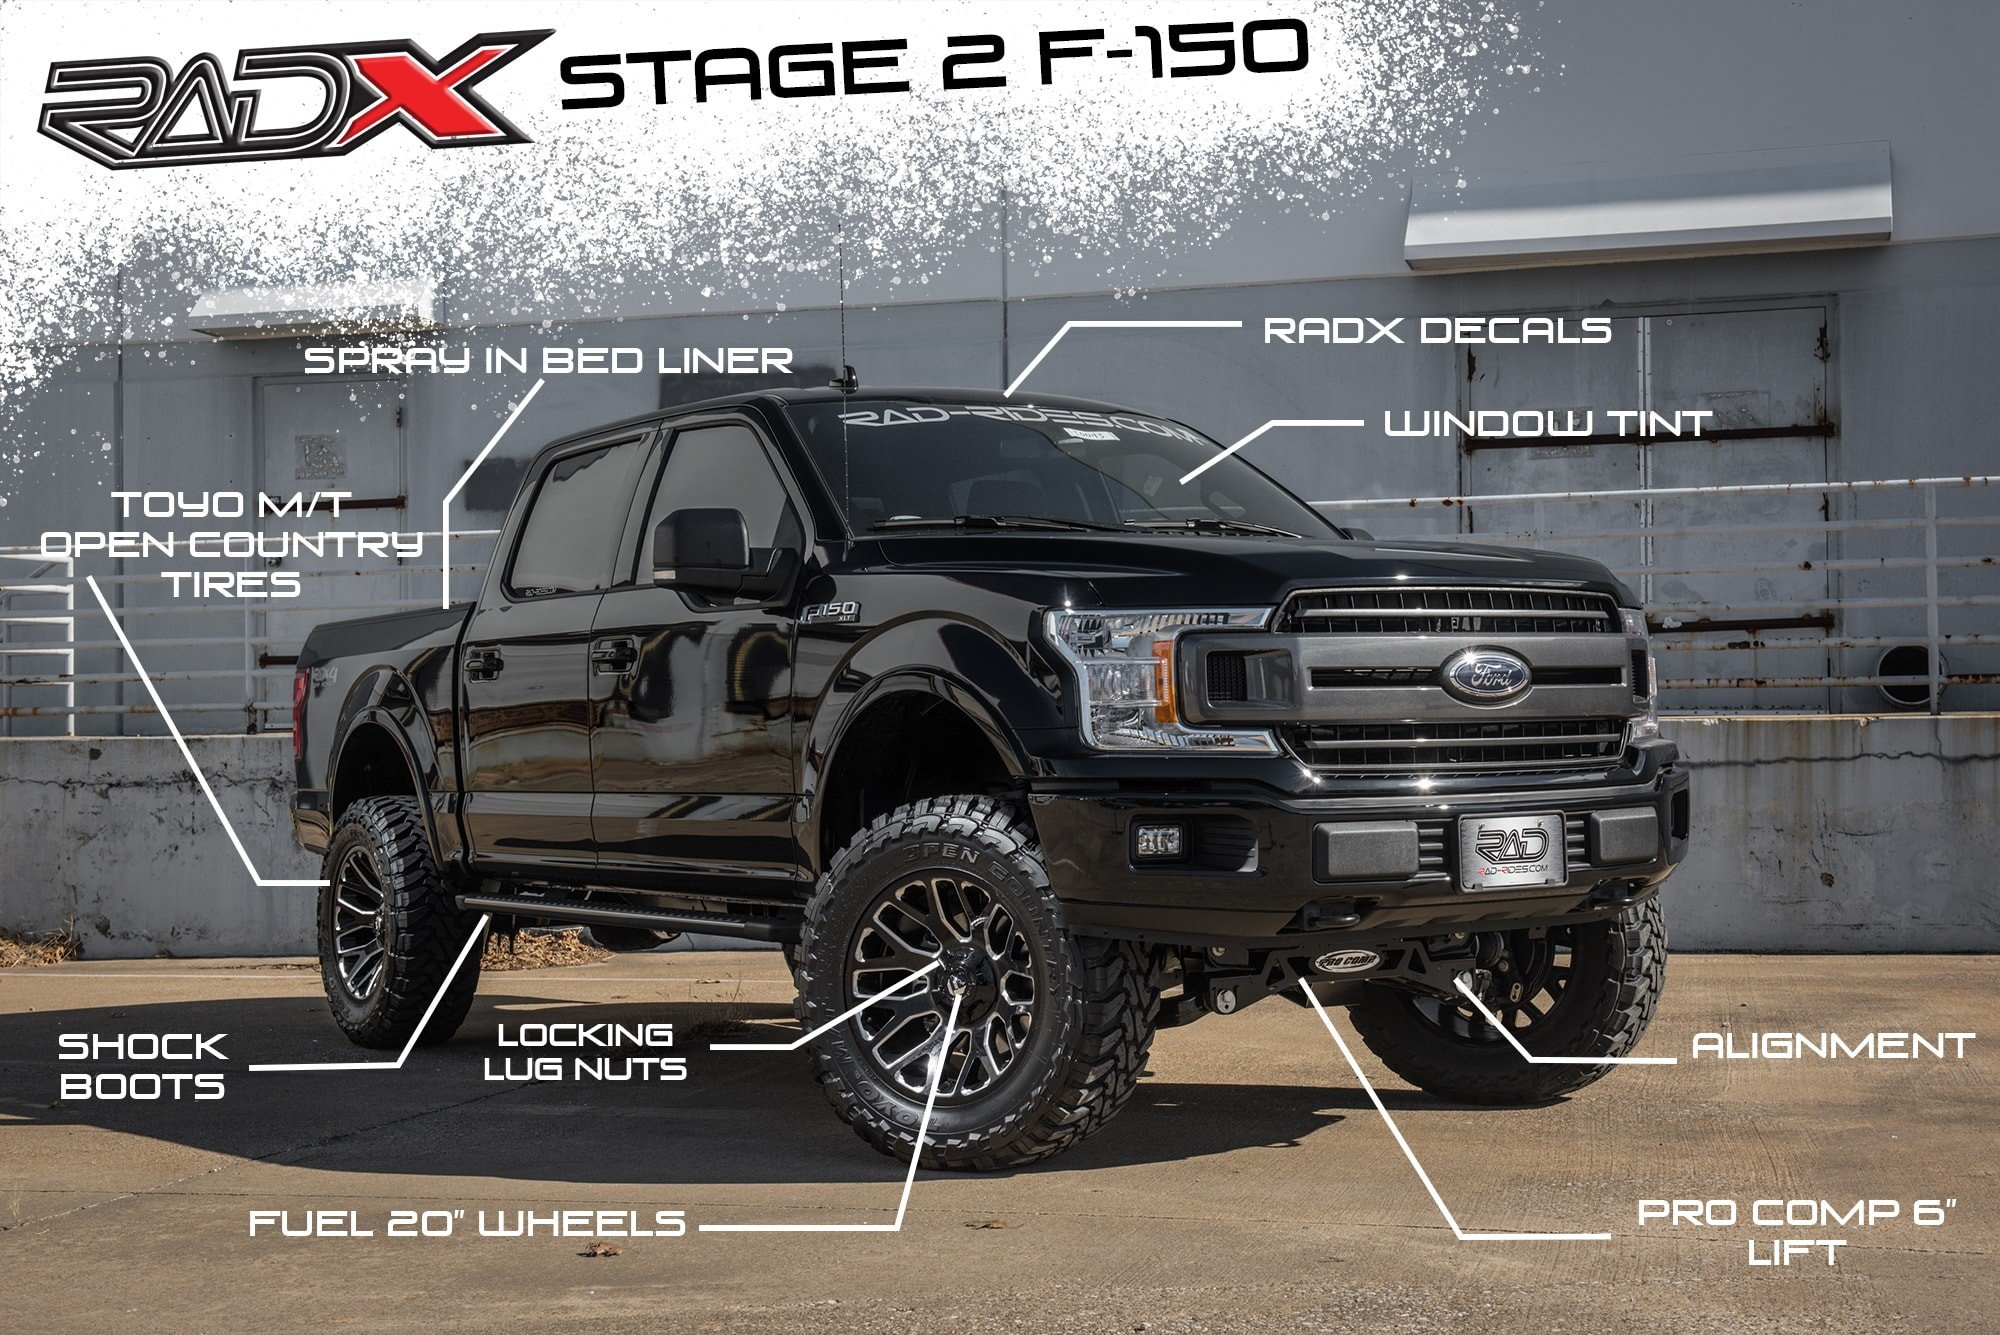 RAD Rides RADX Stage 2 F-150 Lift Kit Package - Lifted Ford Trucks - New Lifted Ford F-150 Trucks - Park Cities Ford of Dallas